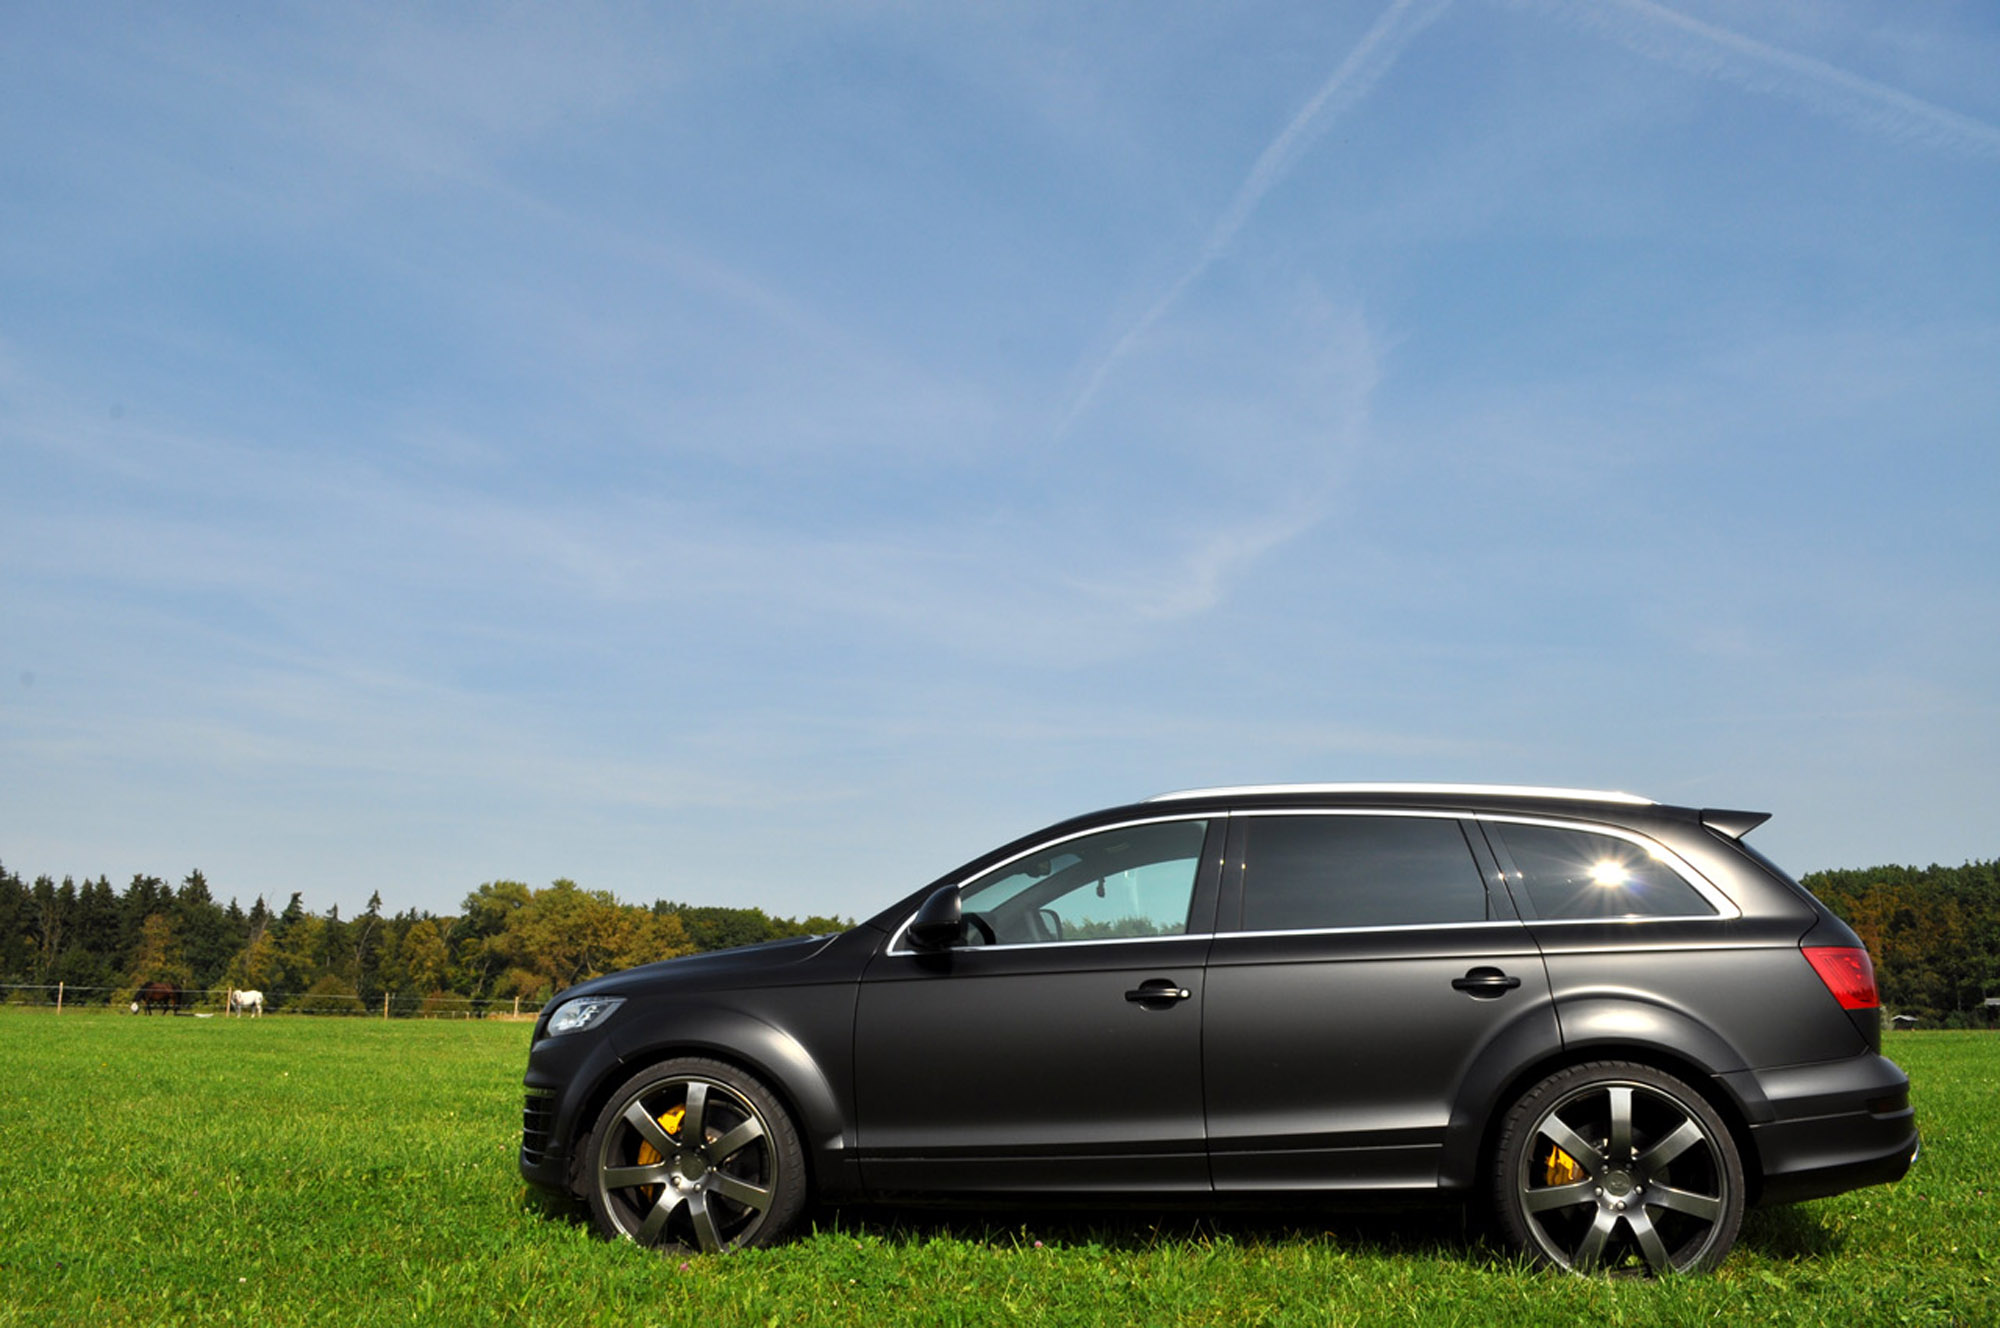 ENCO-Exclusive presents Audi Q7 3.0 TDI